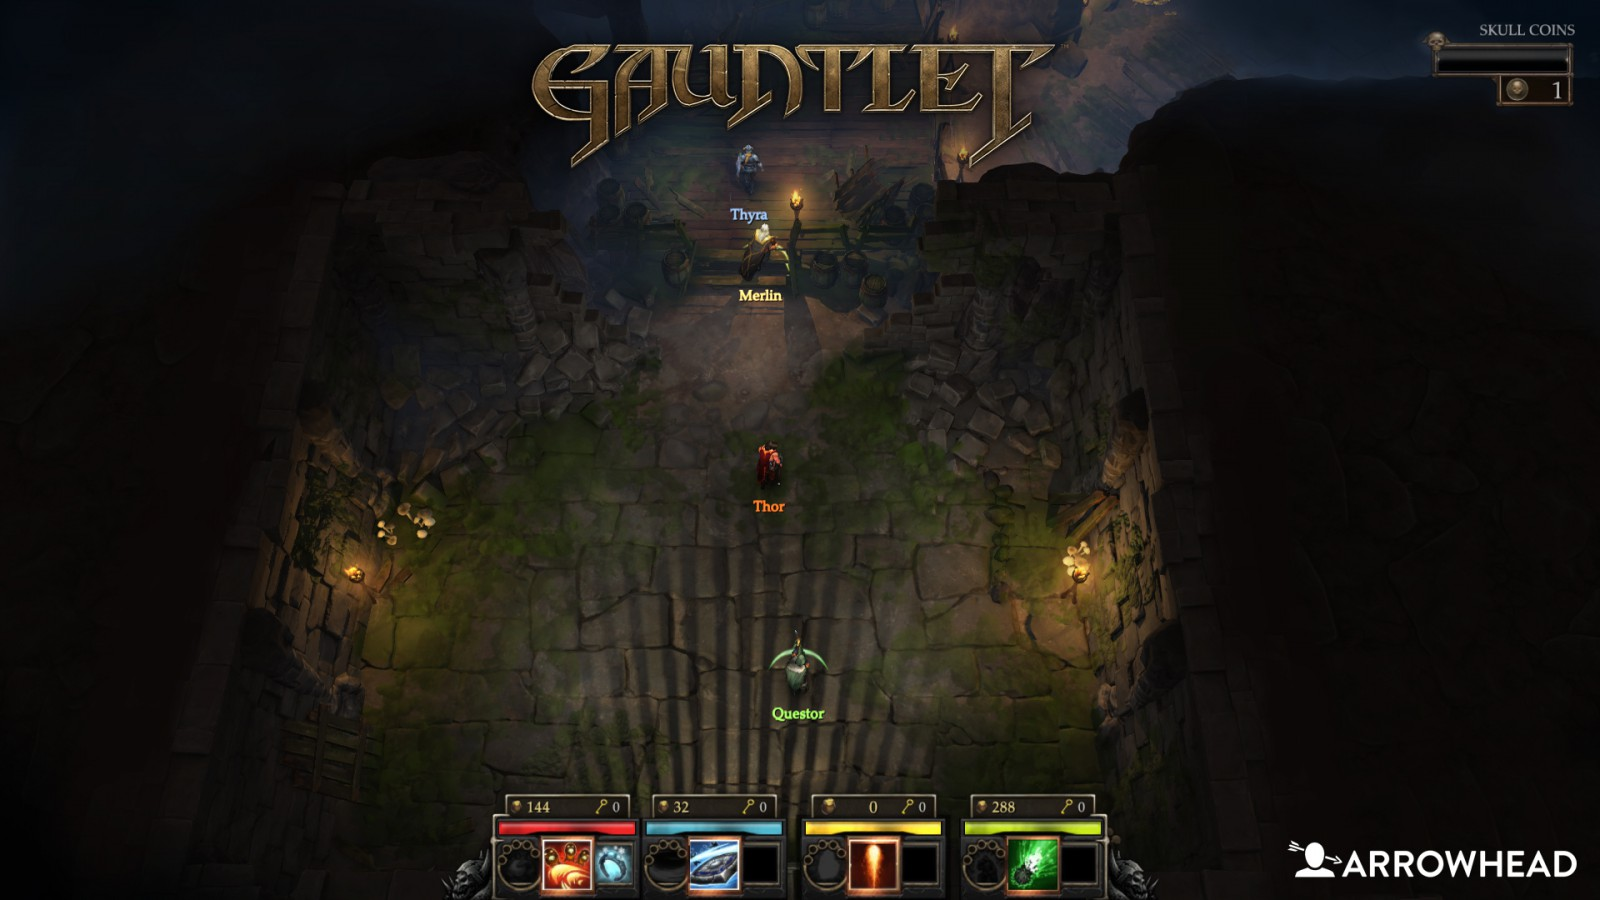 gauntlet_shot_caves